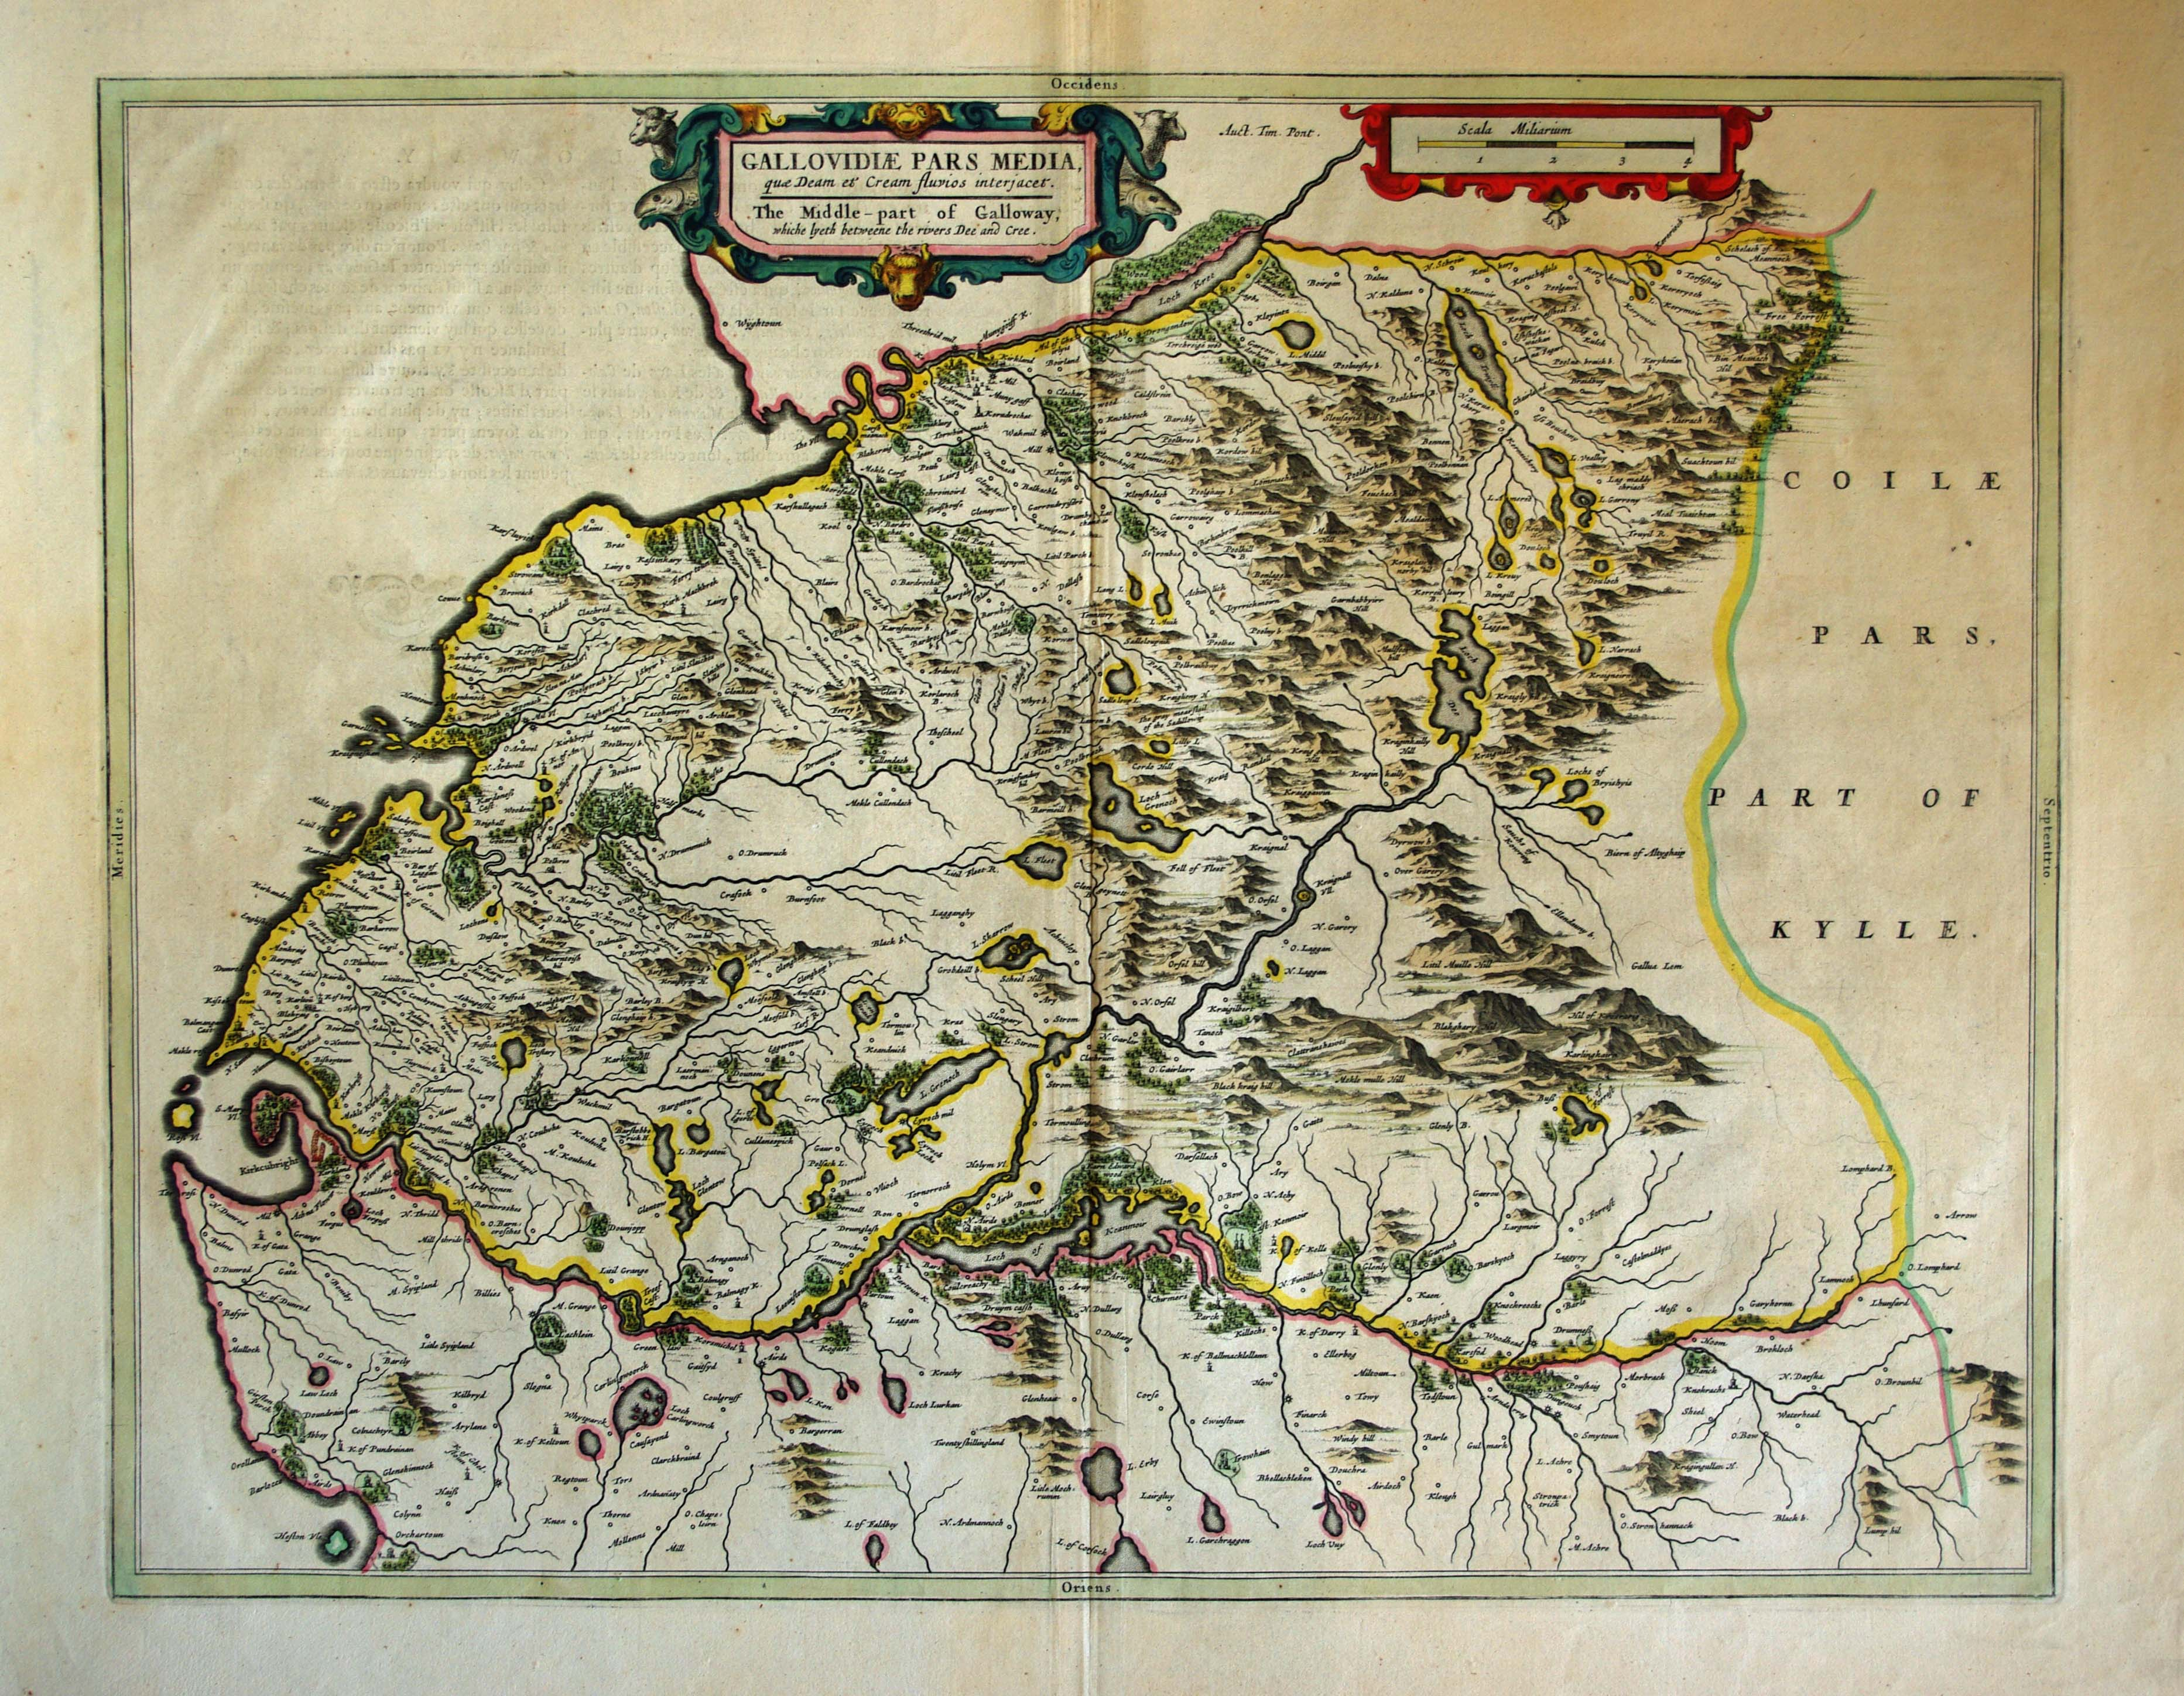 Blaeu's Mid Galloway, click for full res image